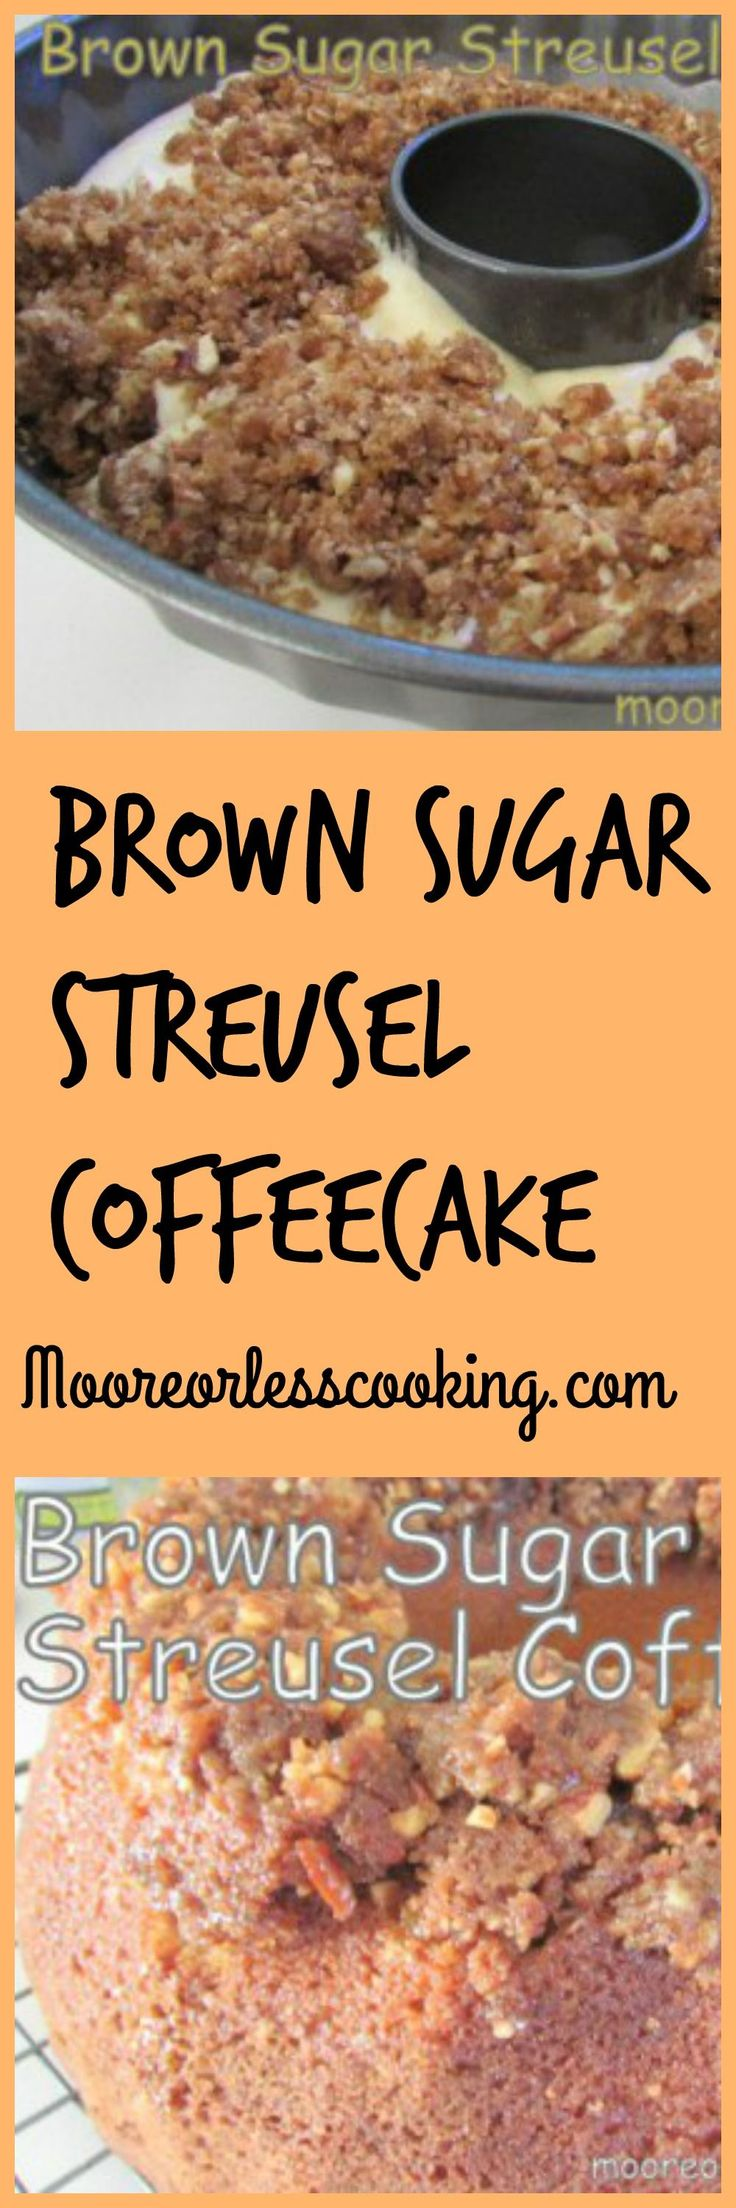 Brown Sugar Streusel Coffee Cake